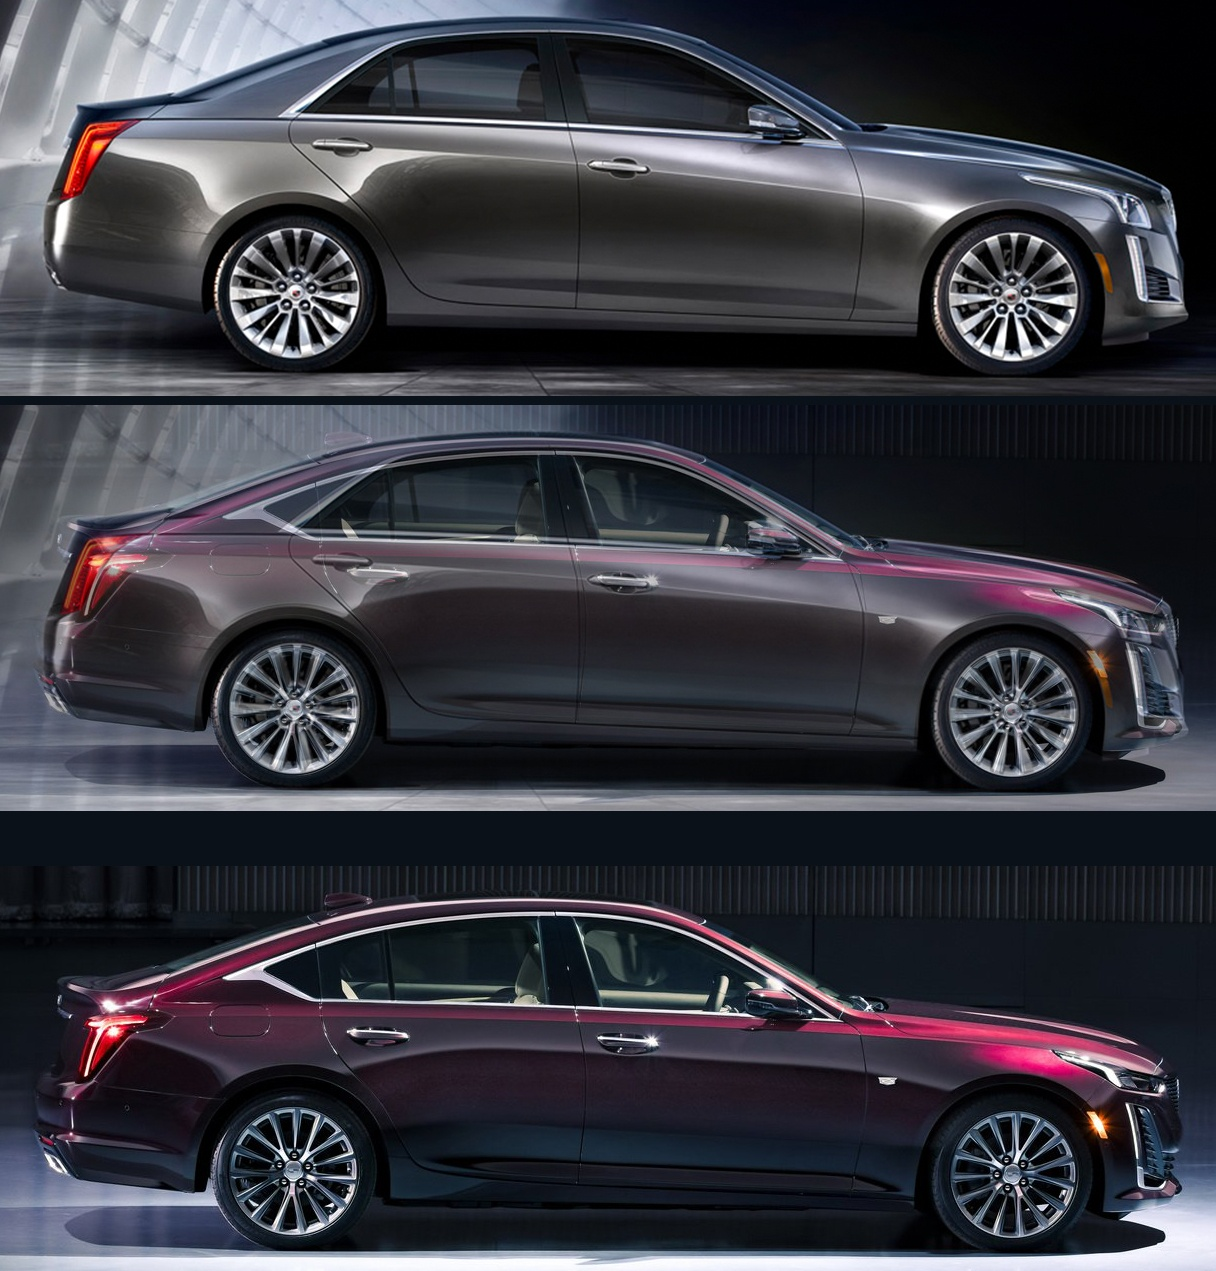 2020 Cadillac CT5 Is A Bold Replacement For The ATS And